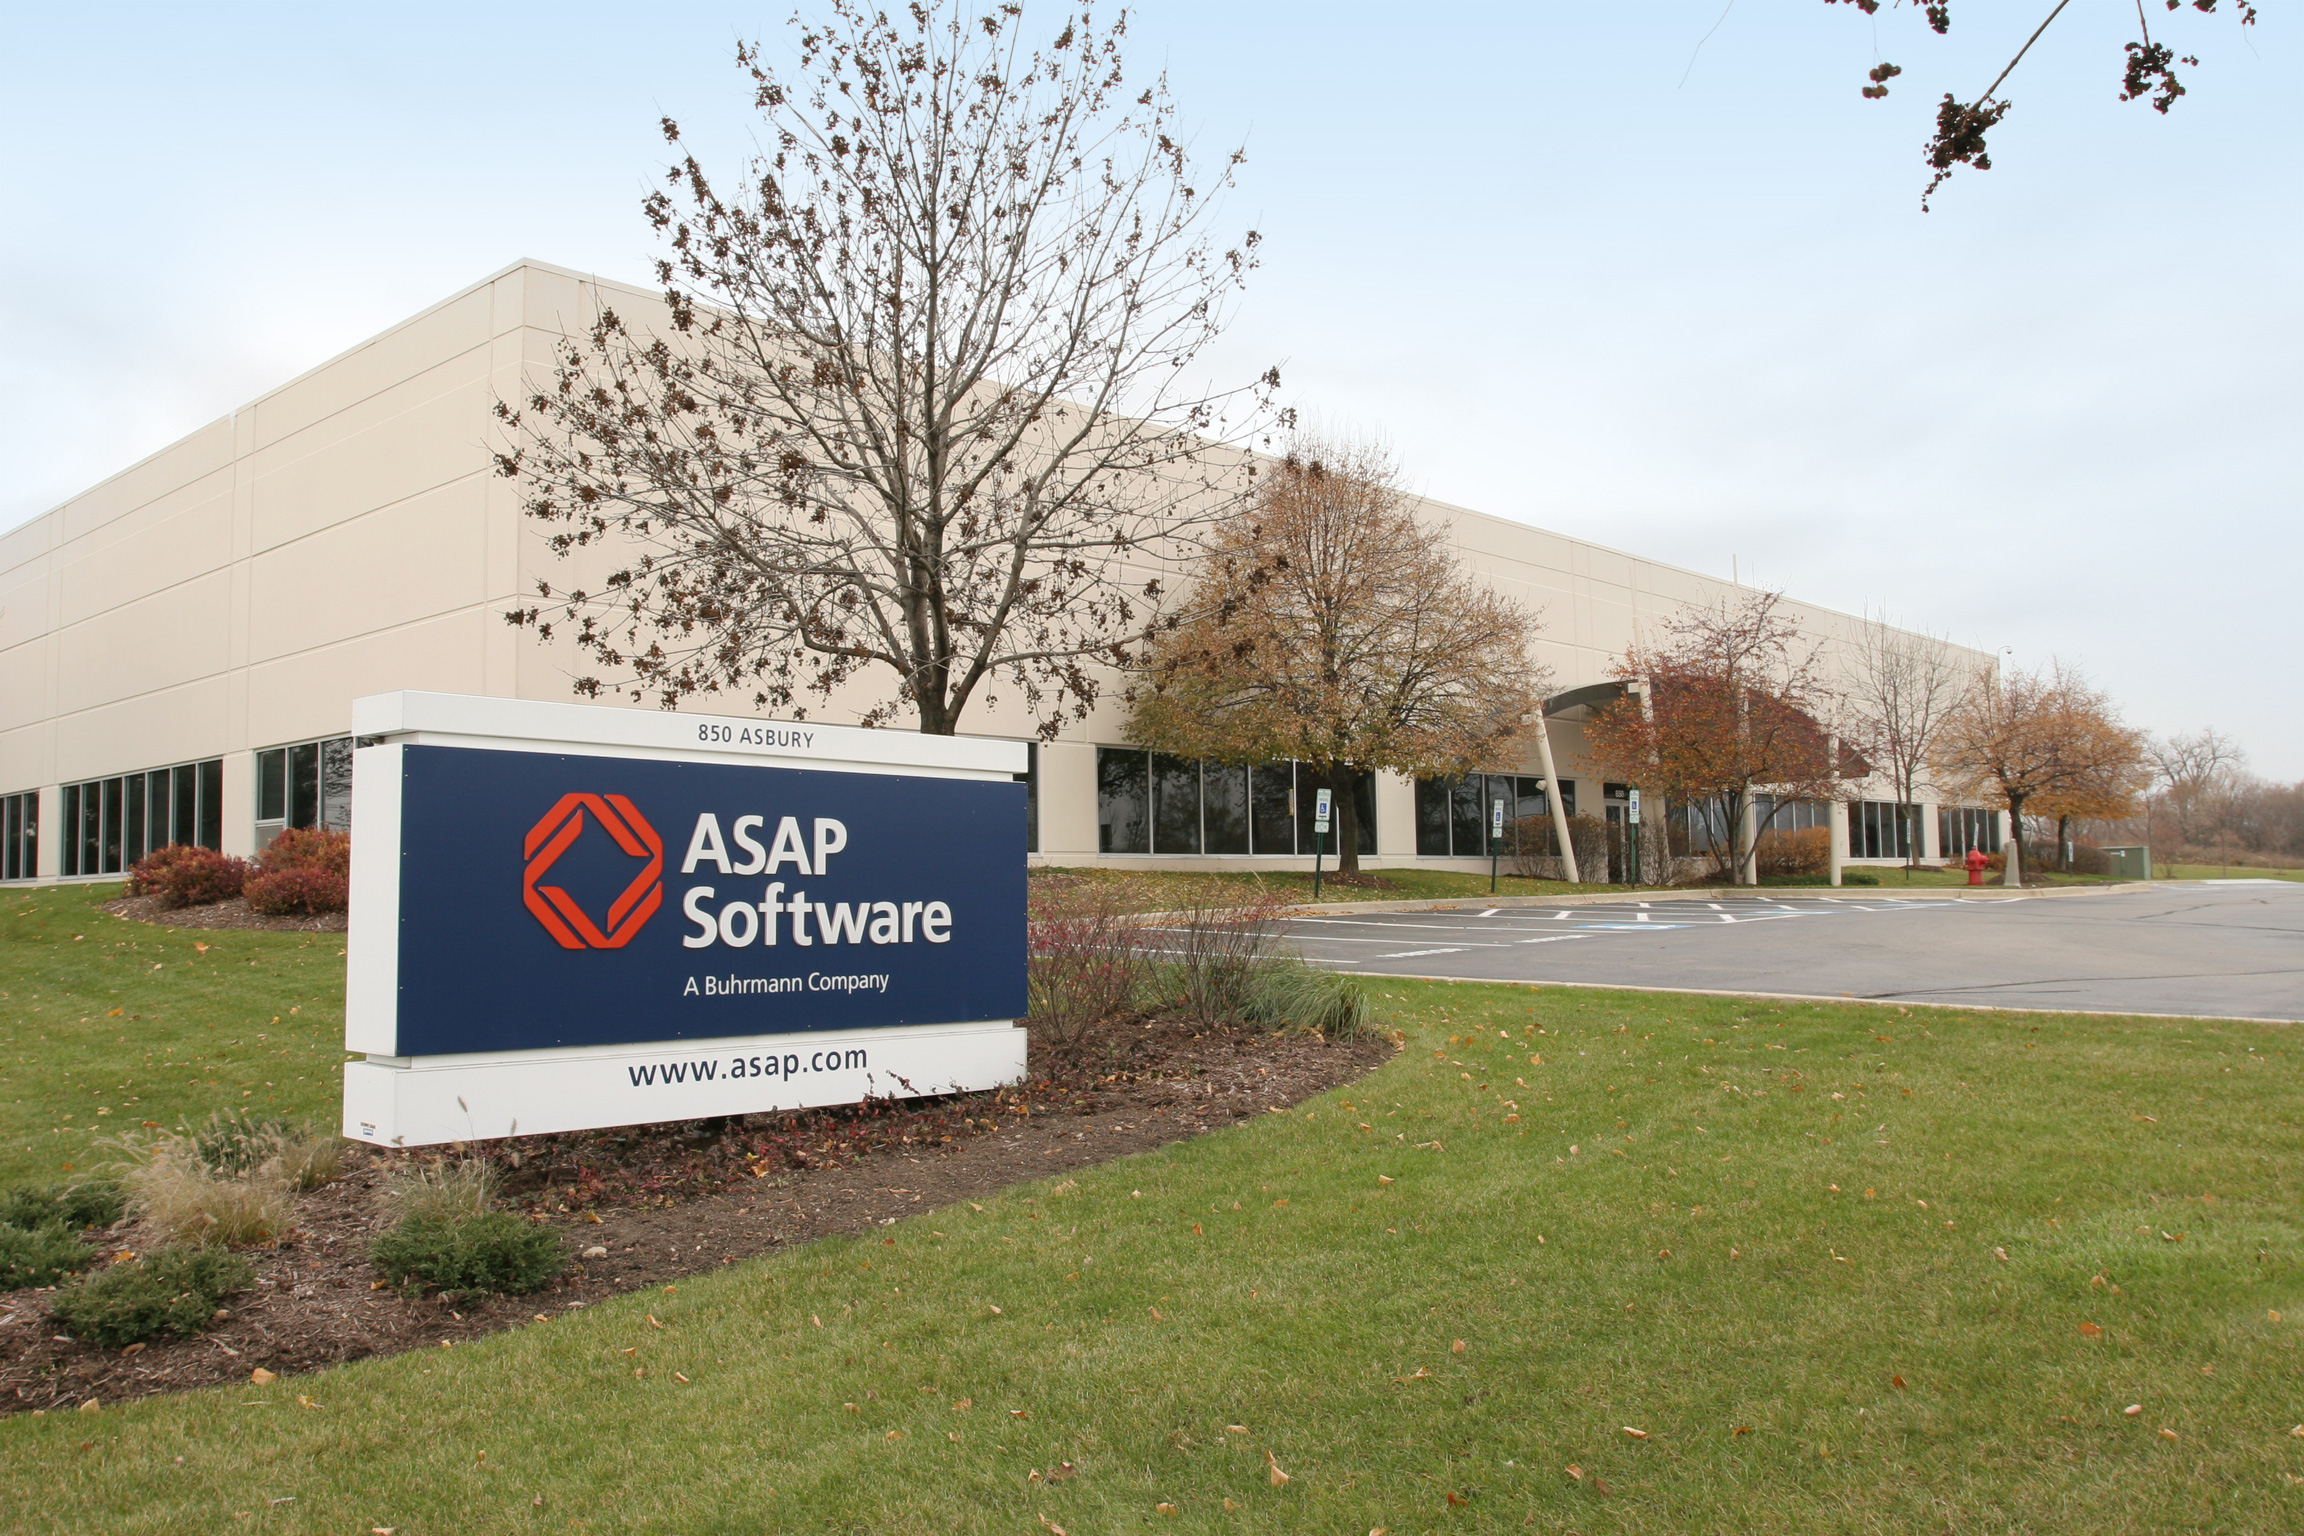 ASAP Software